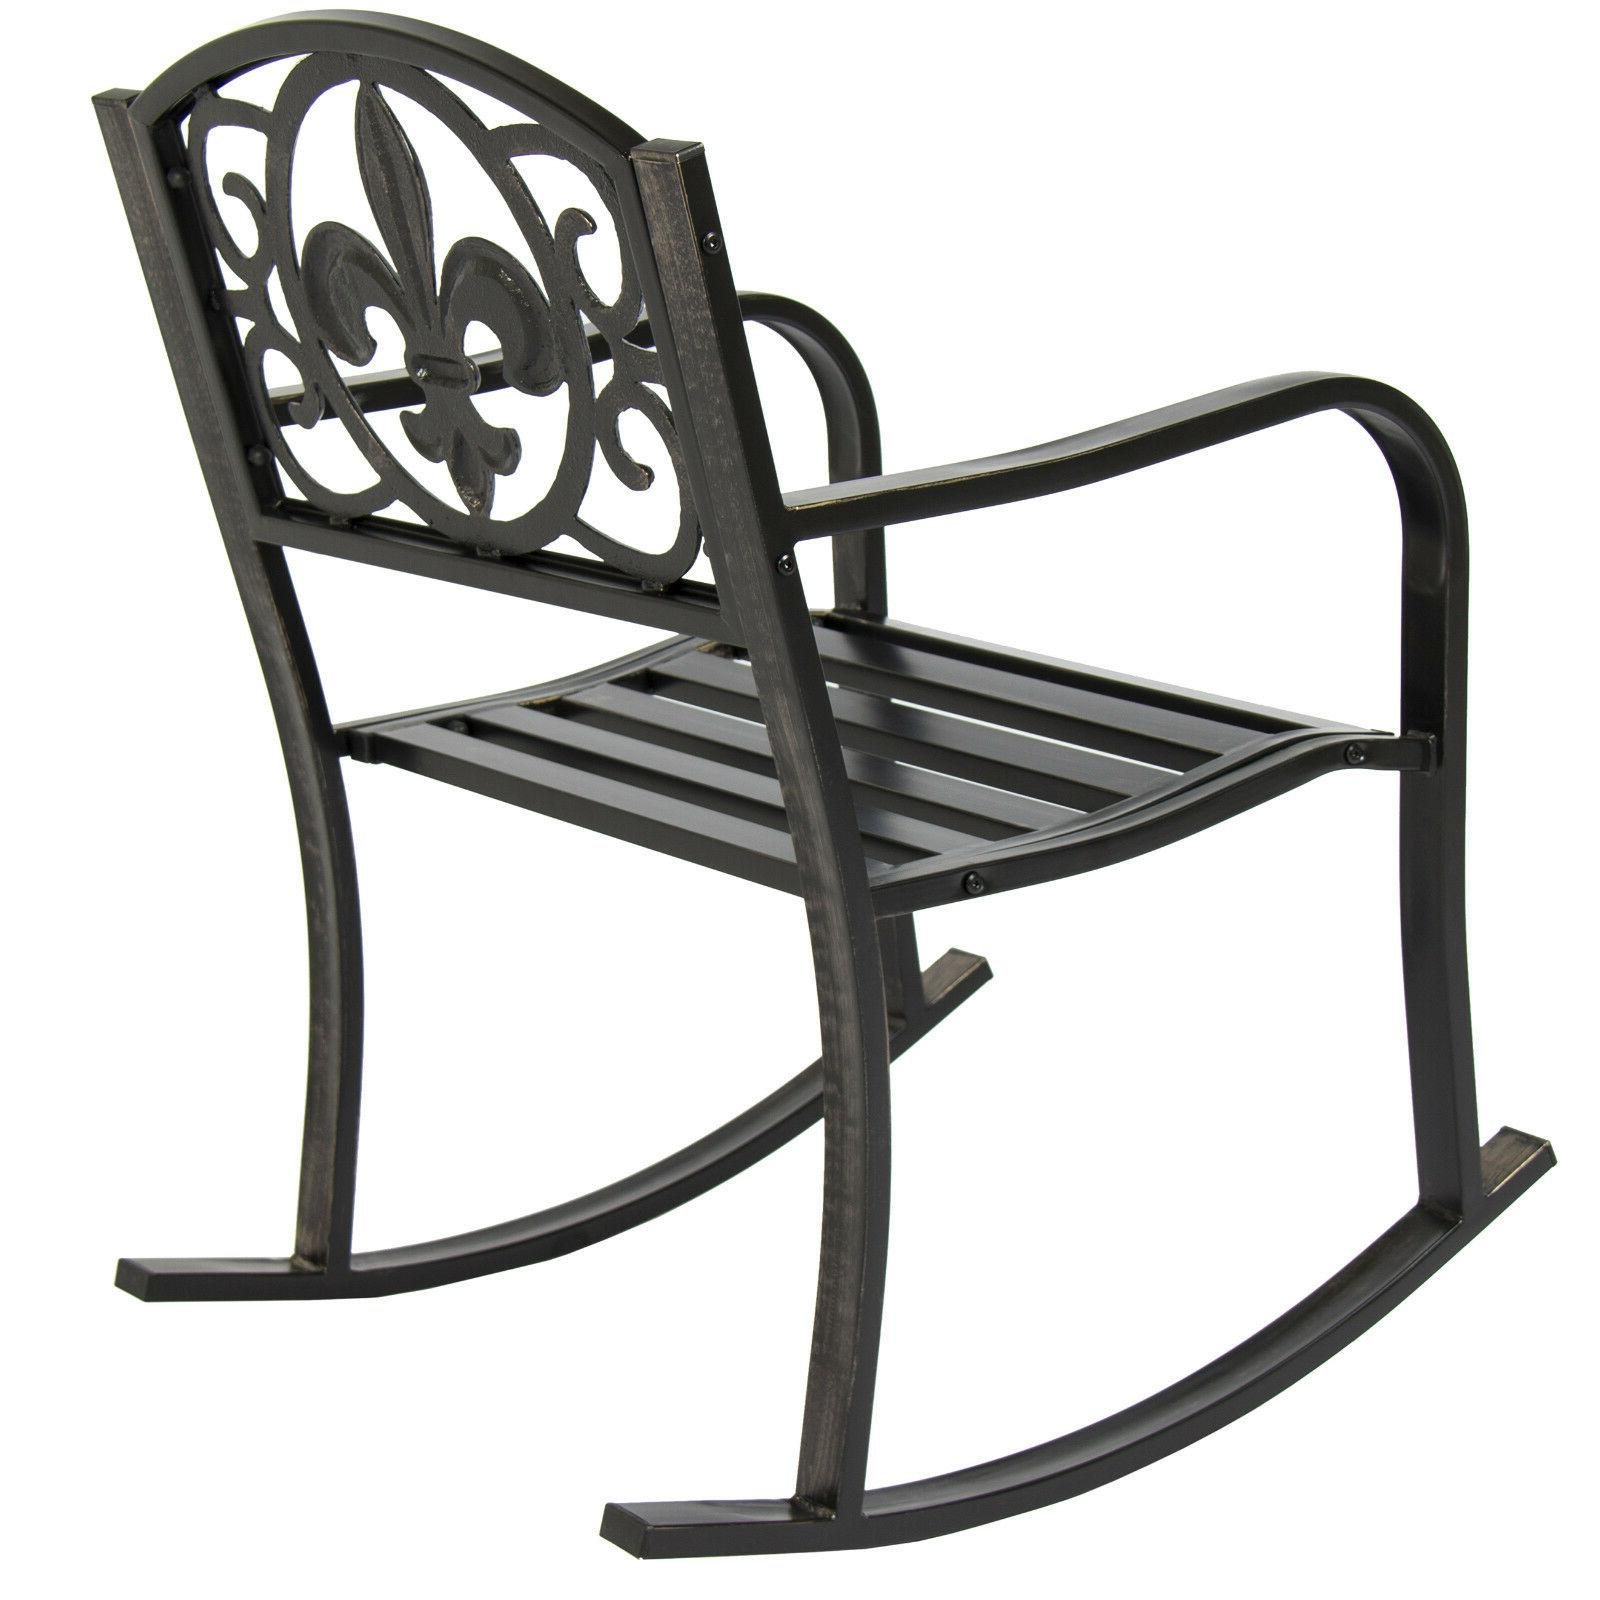 Patio Rocking Chair Outdoor Porch Furniture Seat